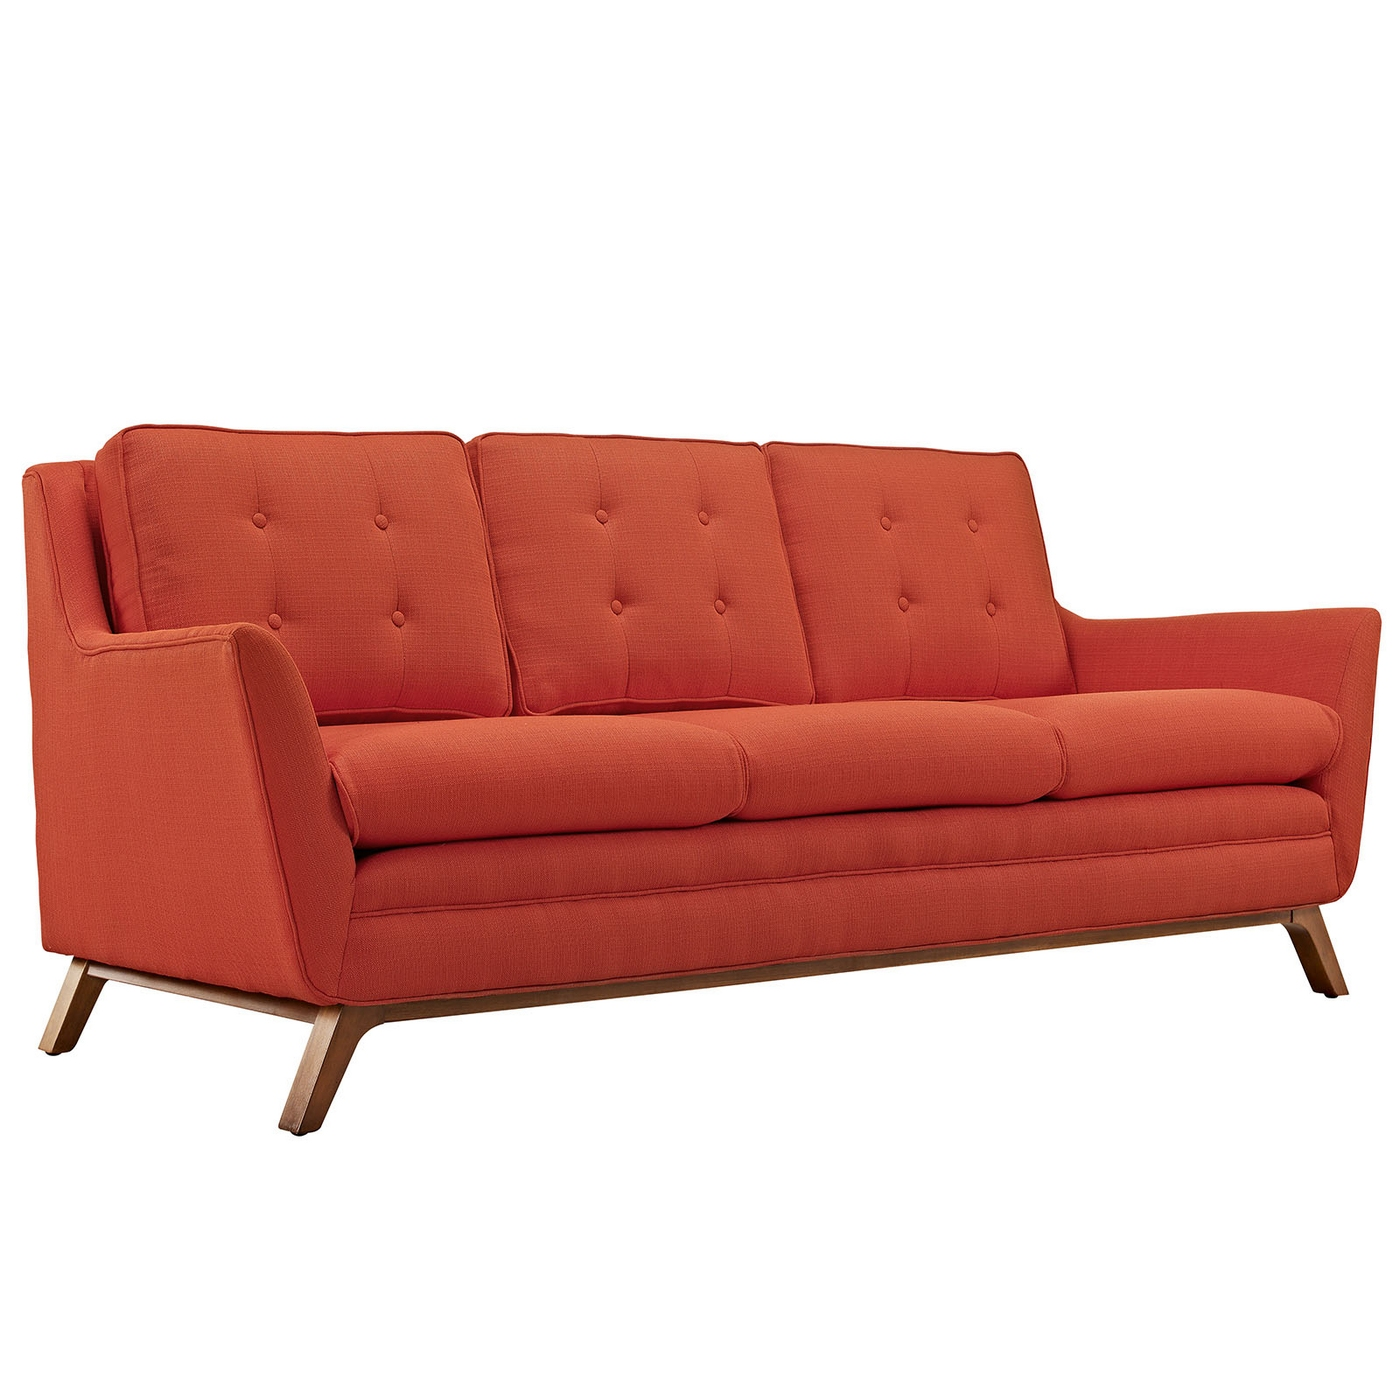 button tufted sofas harvest reclining sofa loveseat and chair set beguile contemporary upholstered